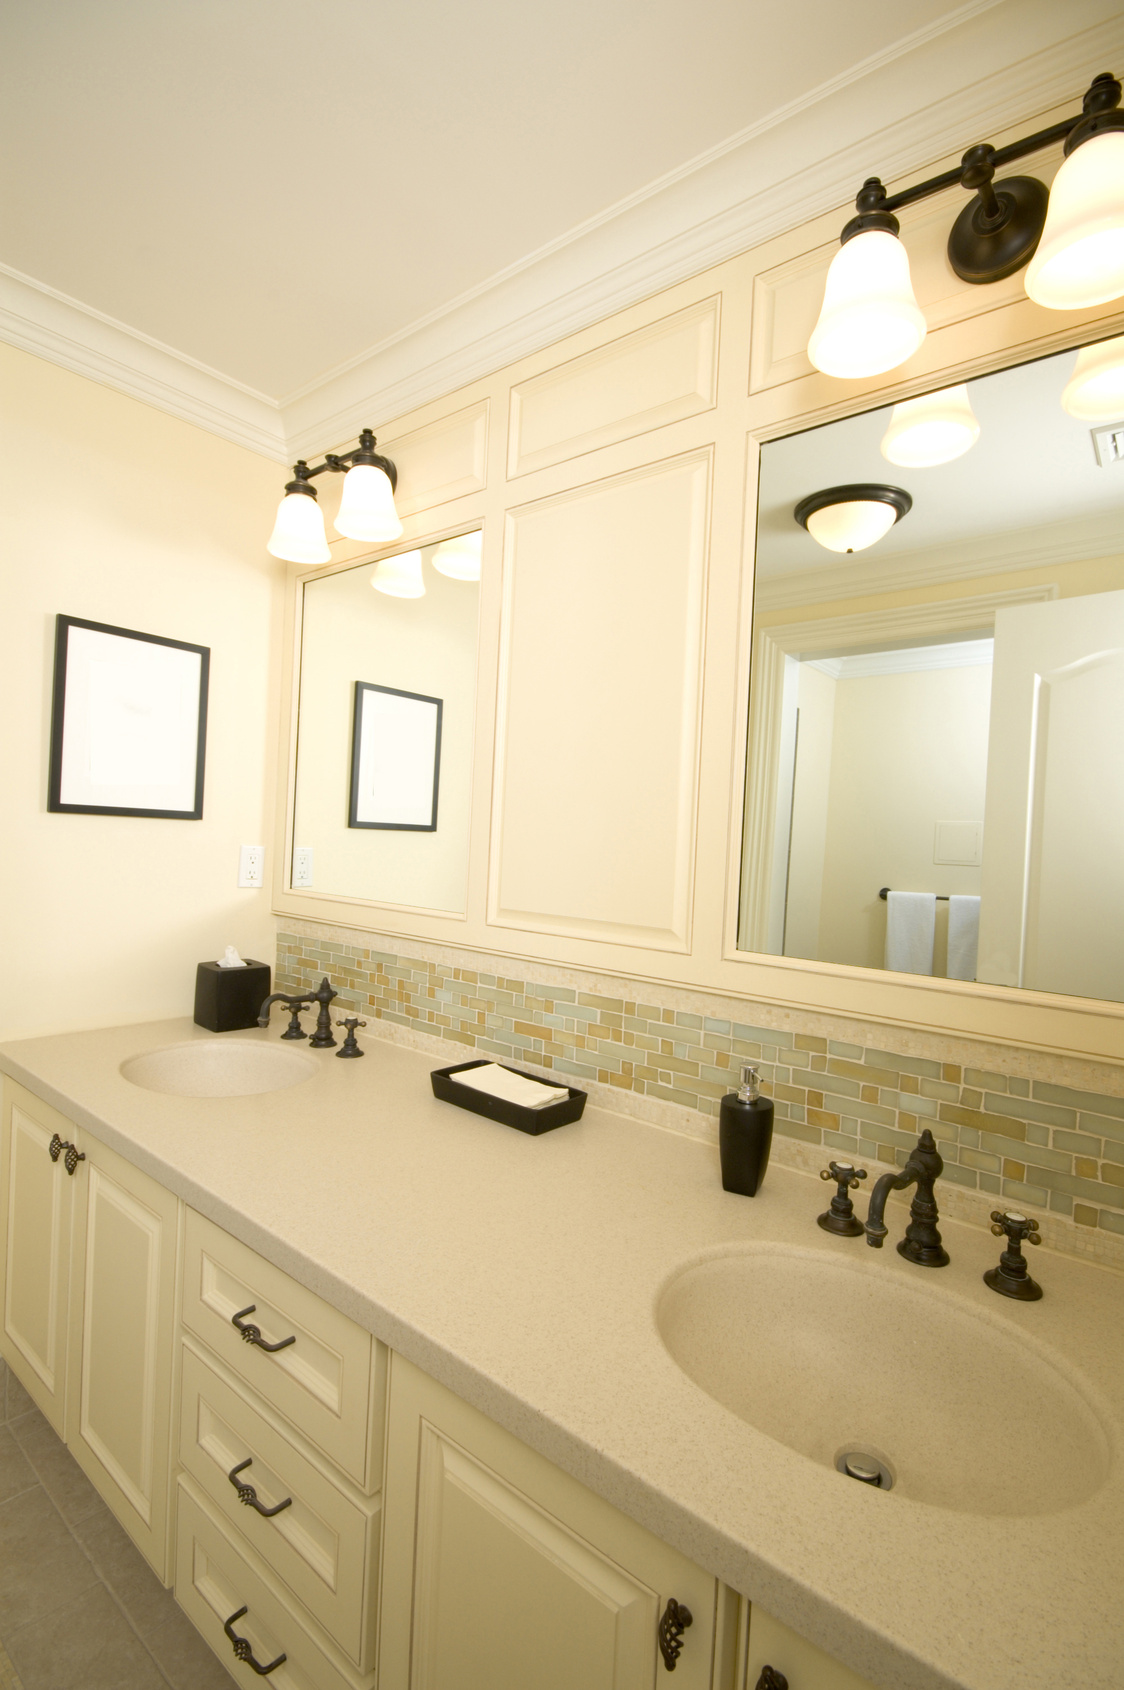 Bathroom Sinks Kansas City k.c. custom cabinets - quality custom cabinetry in kansas city